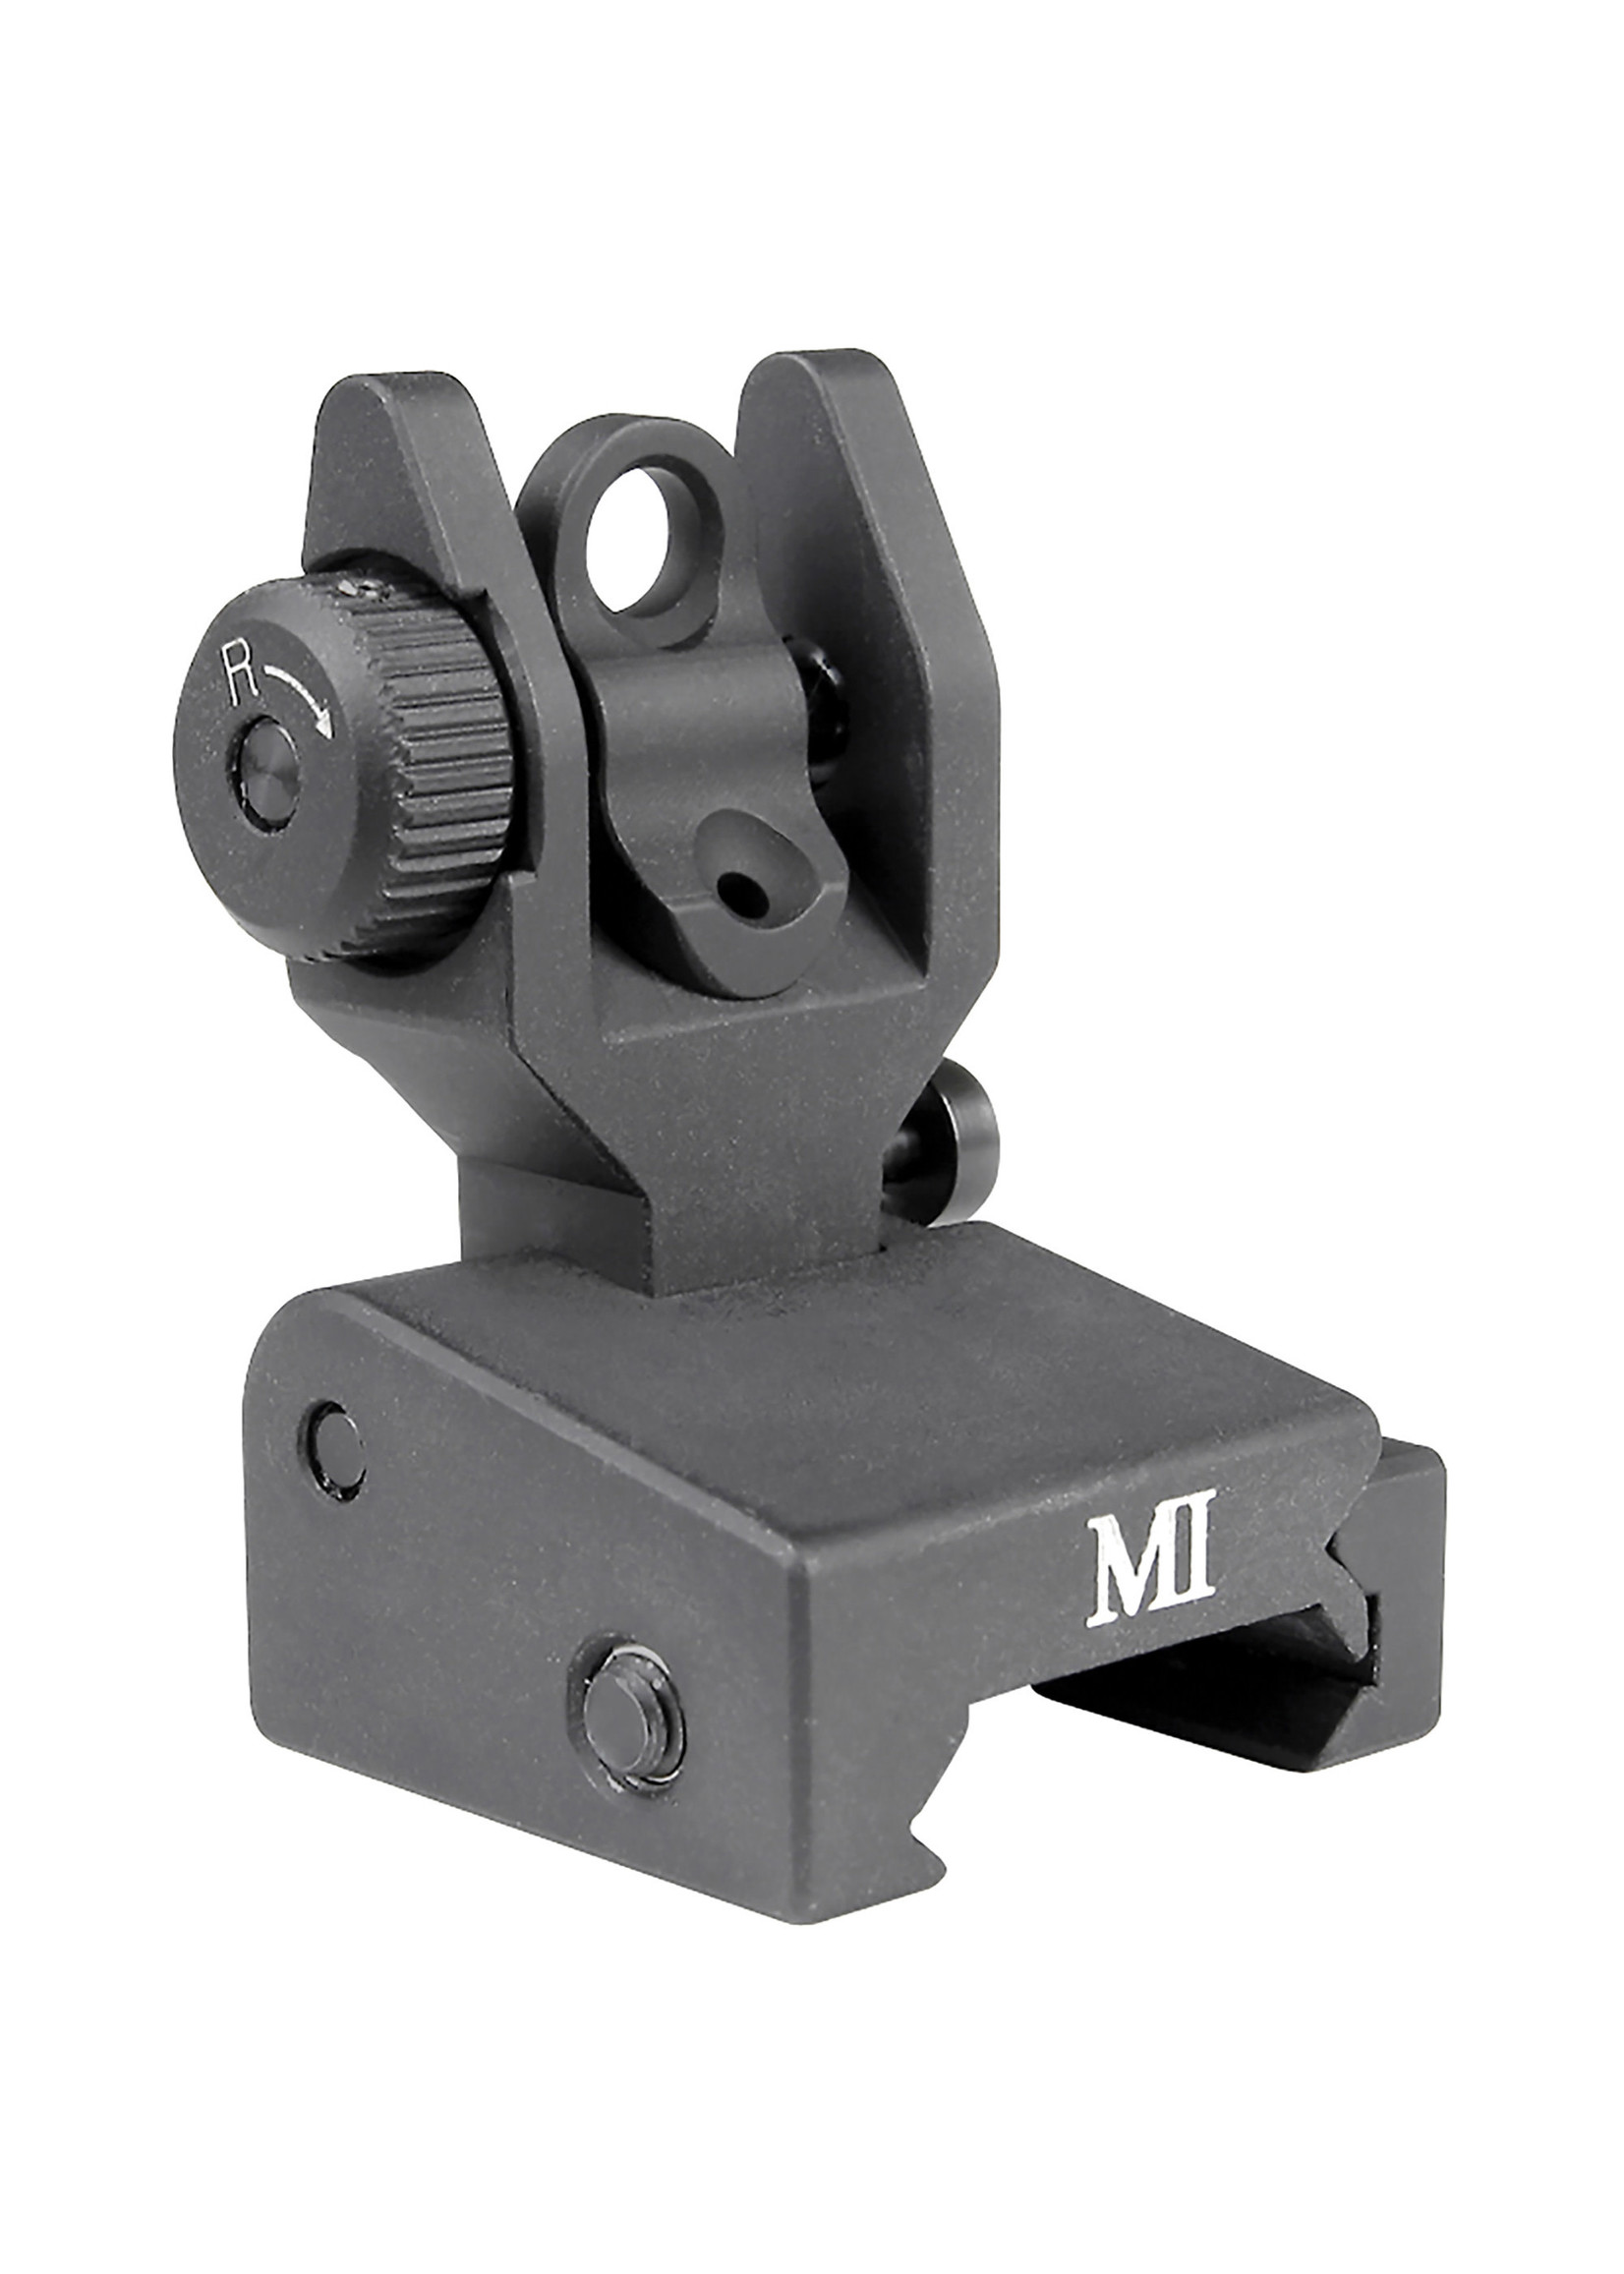 MIDWEST MIDWEST SPLP FLIP UP REAR SIGHT